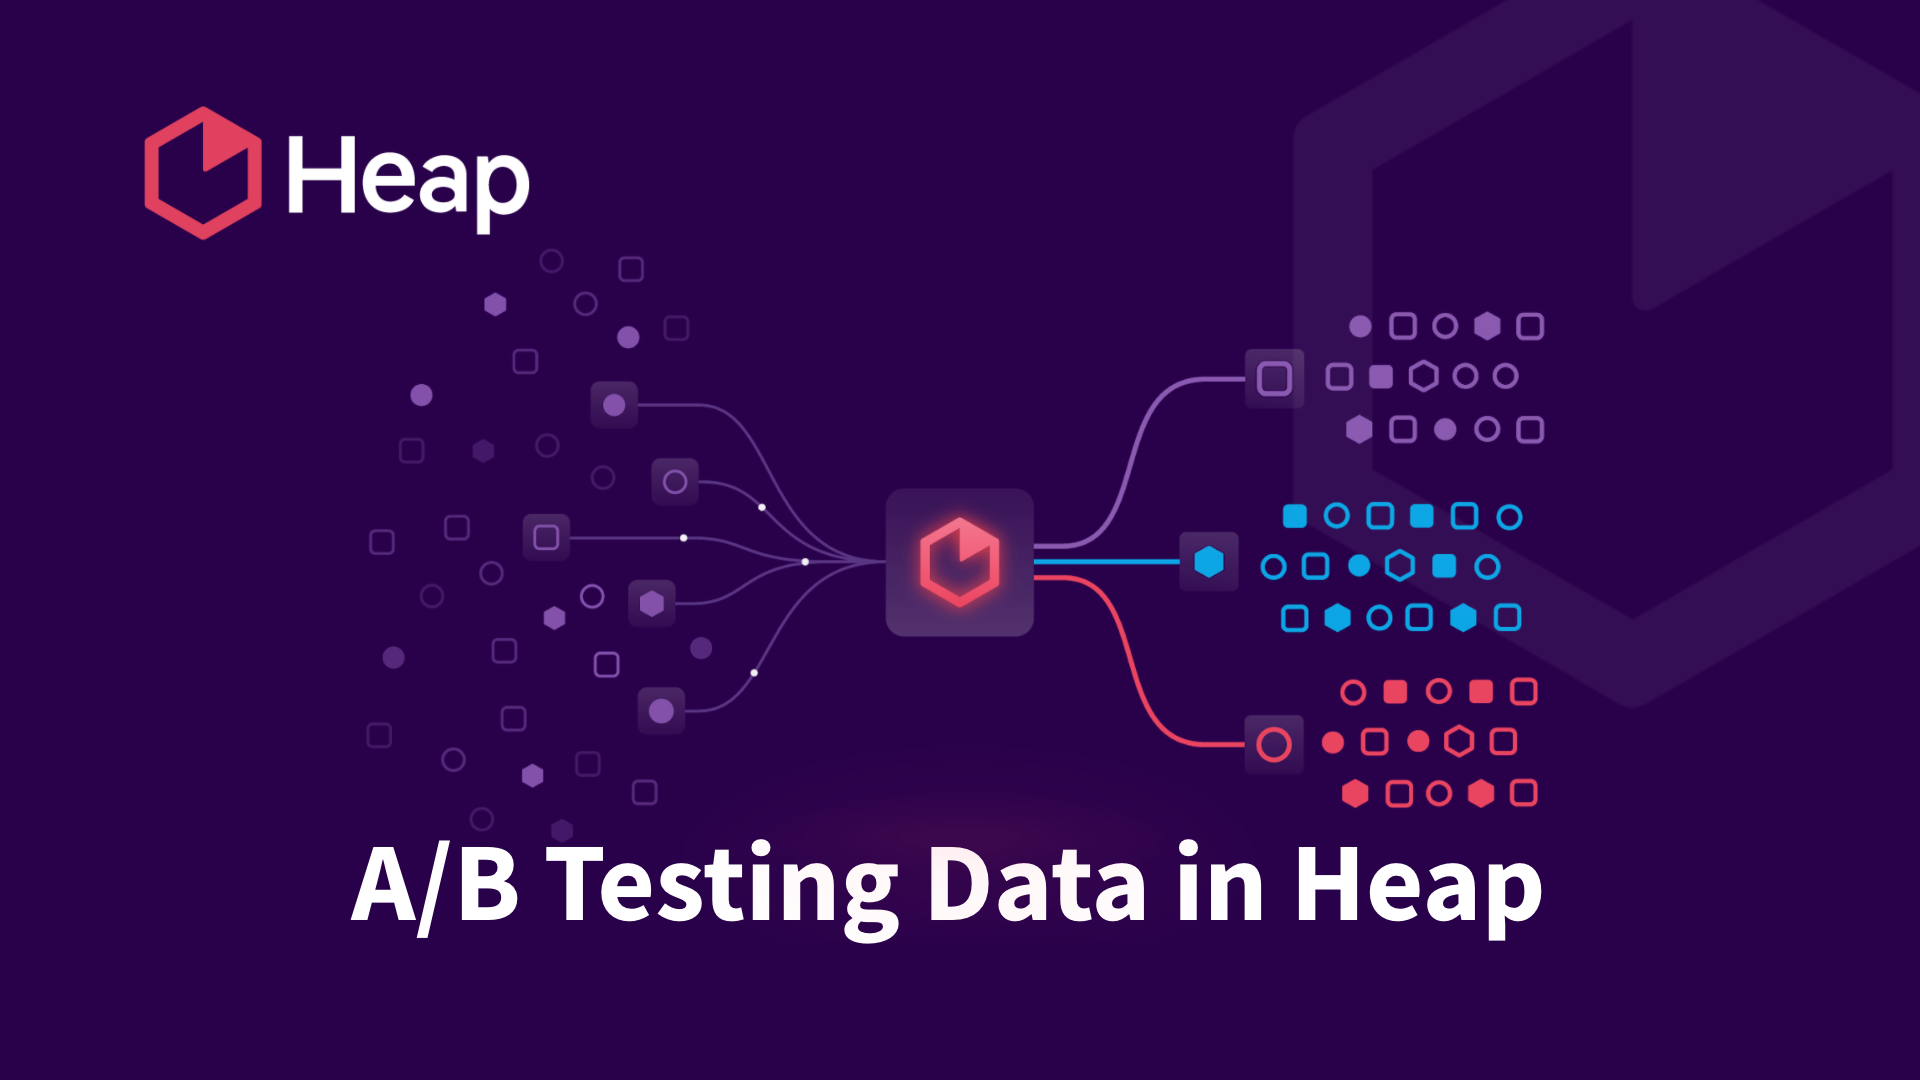 A/B testing Data in Heap